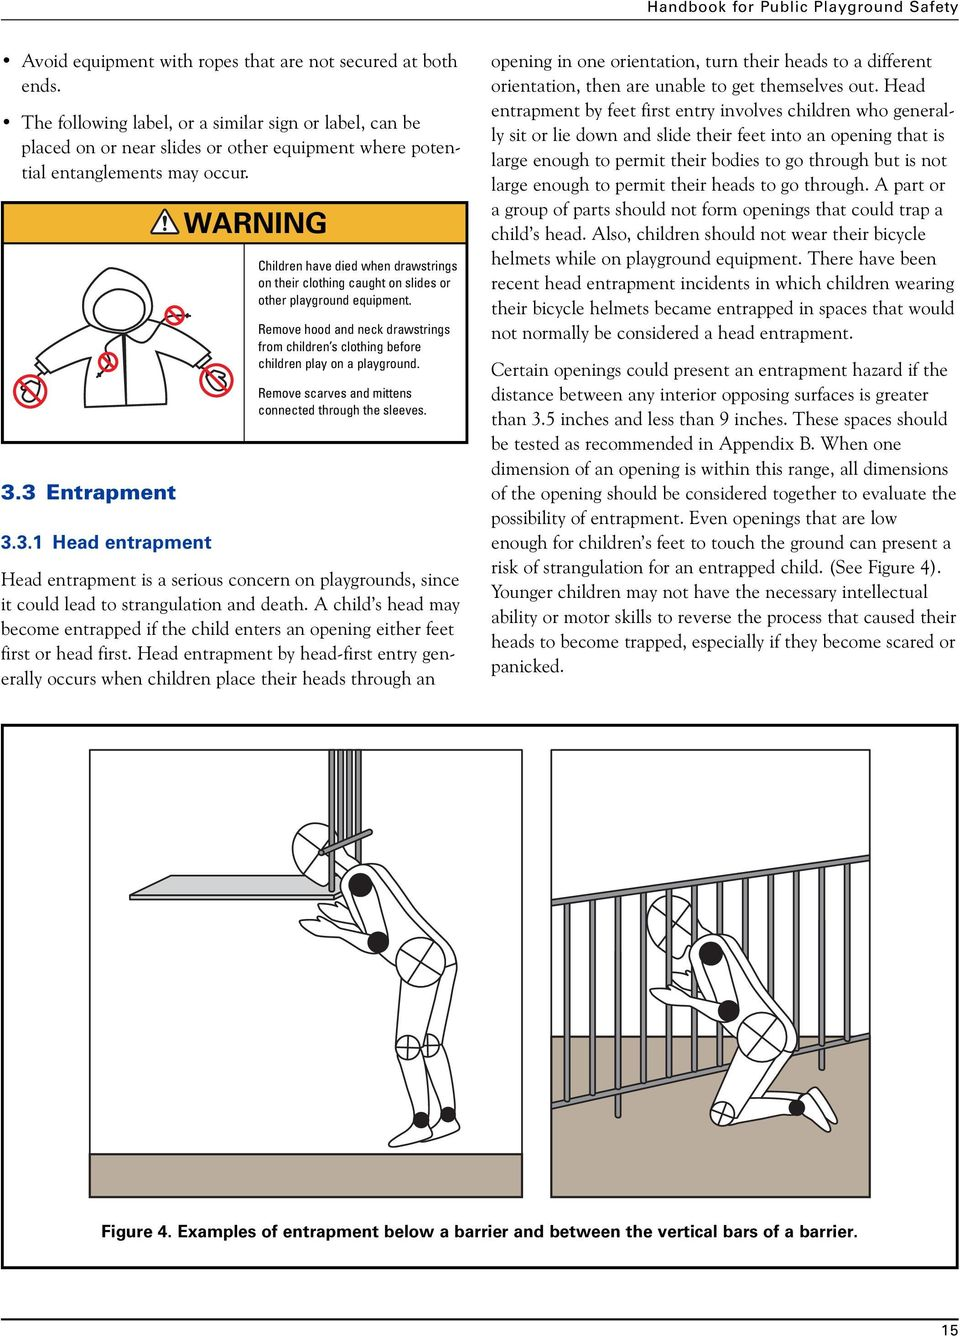 3 Entrapment 3.3.1 Head entrapment WARNING Children have died when drawstrings on their clothing caught on slides or other playground equipment.